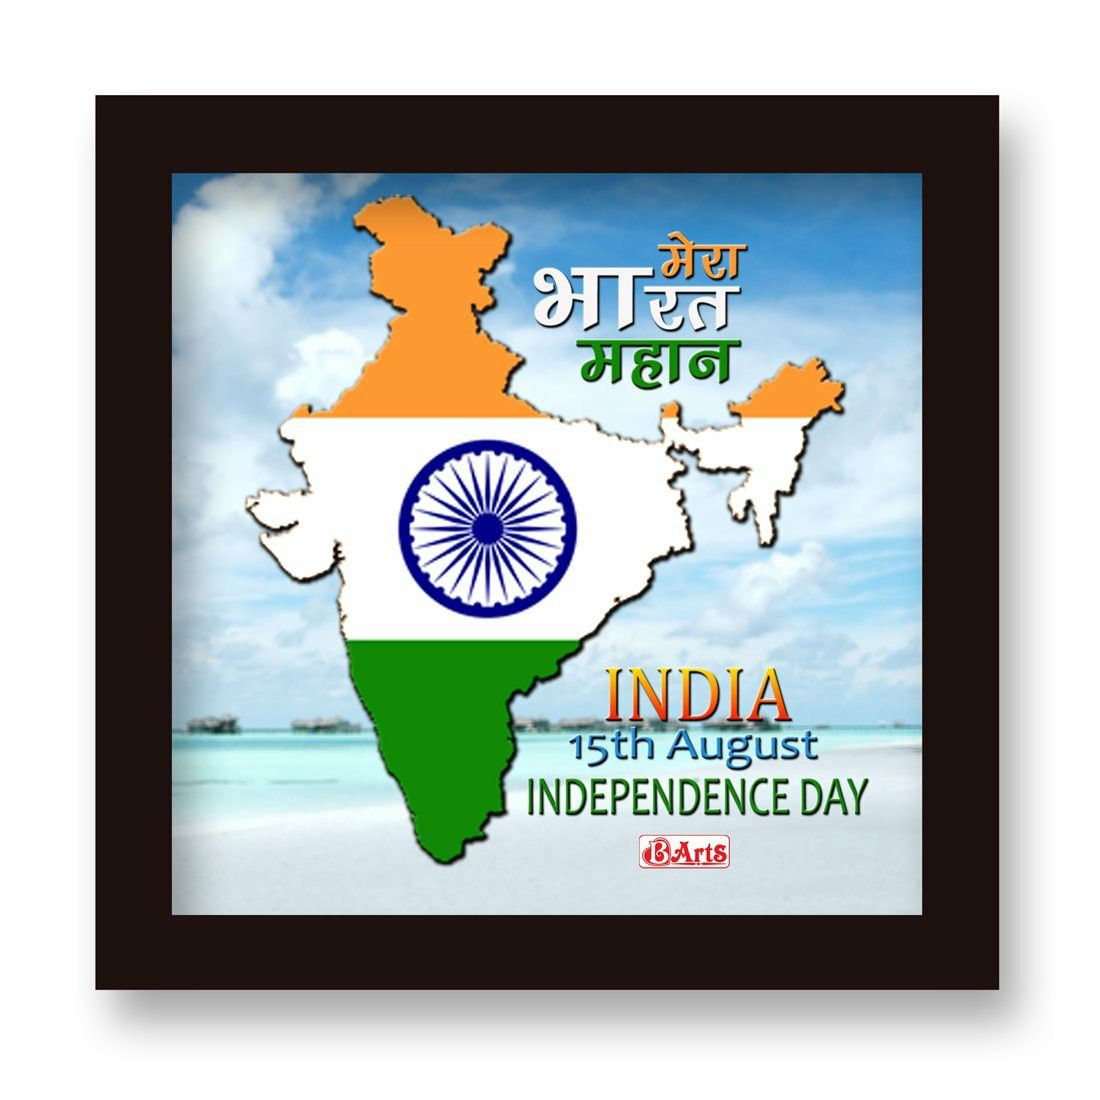 Happy Republic Day 2021 Images Gifs Wallpapers 26 January Wishes Hd Shayari Status In 2021 Republic Day Republic Day Status 15 August Independence Day Happy republic day gif 2021 images